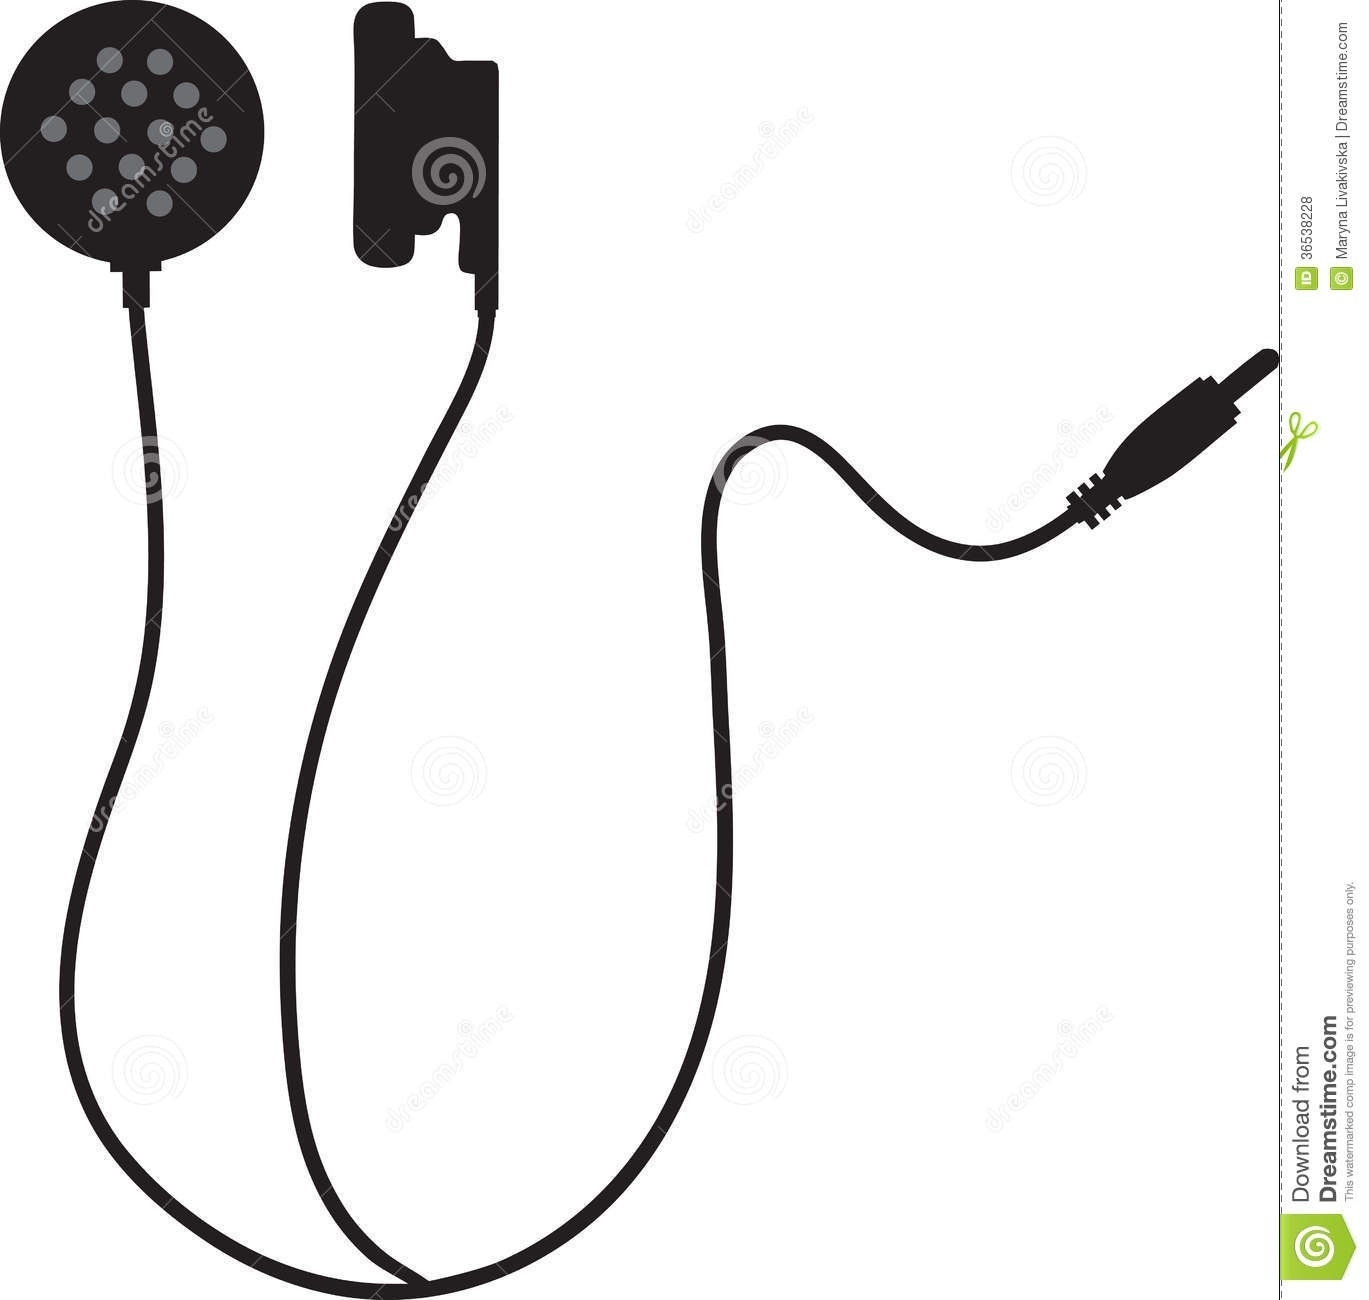 Earbuds clipart. Cool of black and